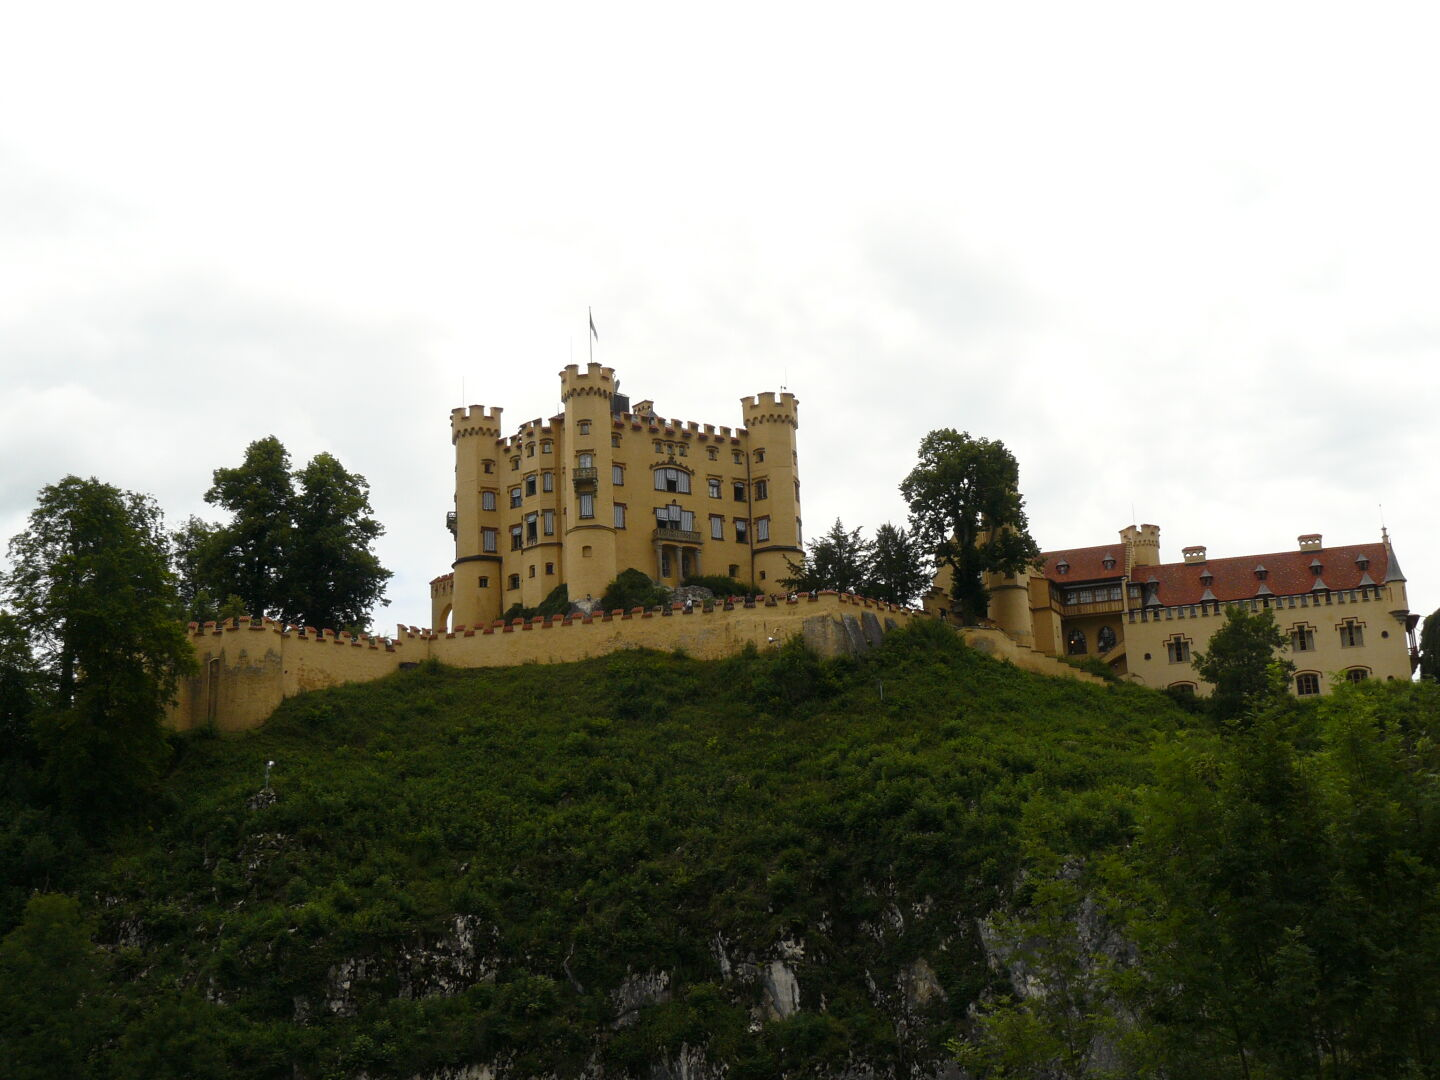 Castle Hohenschwangau, built by the father of Ludwig II, King Maximilian II. He's the guy whom the trail is named after.